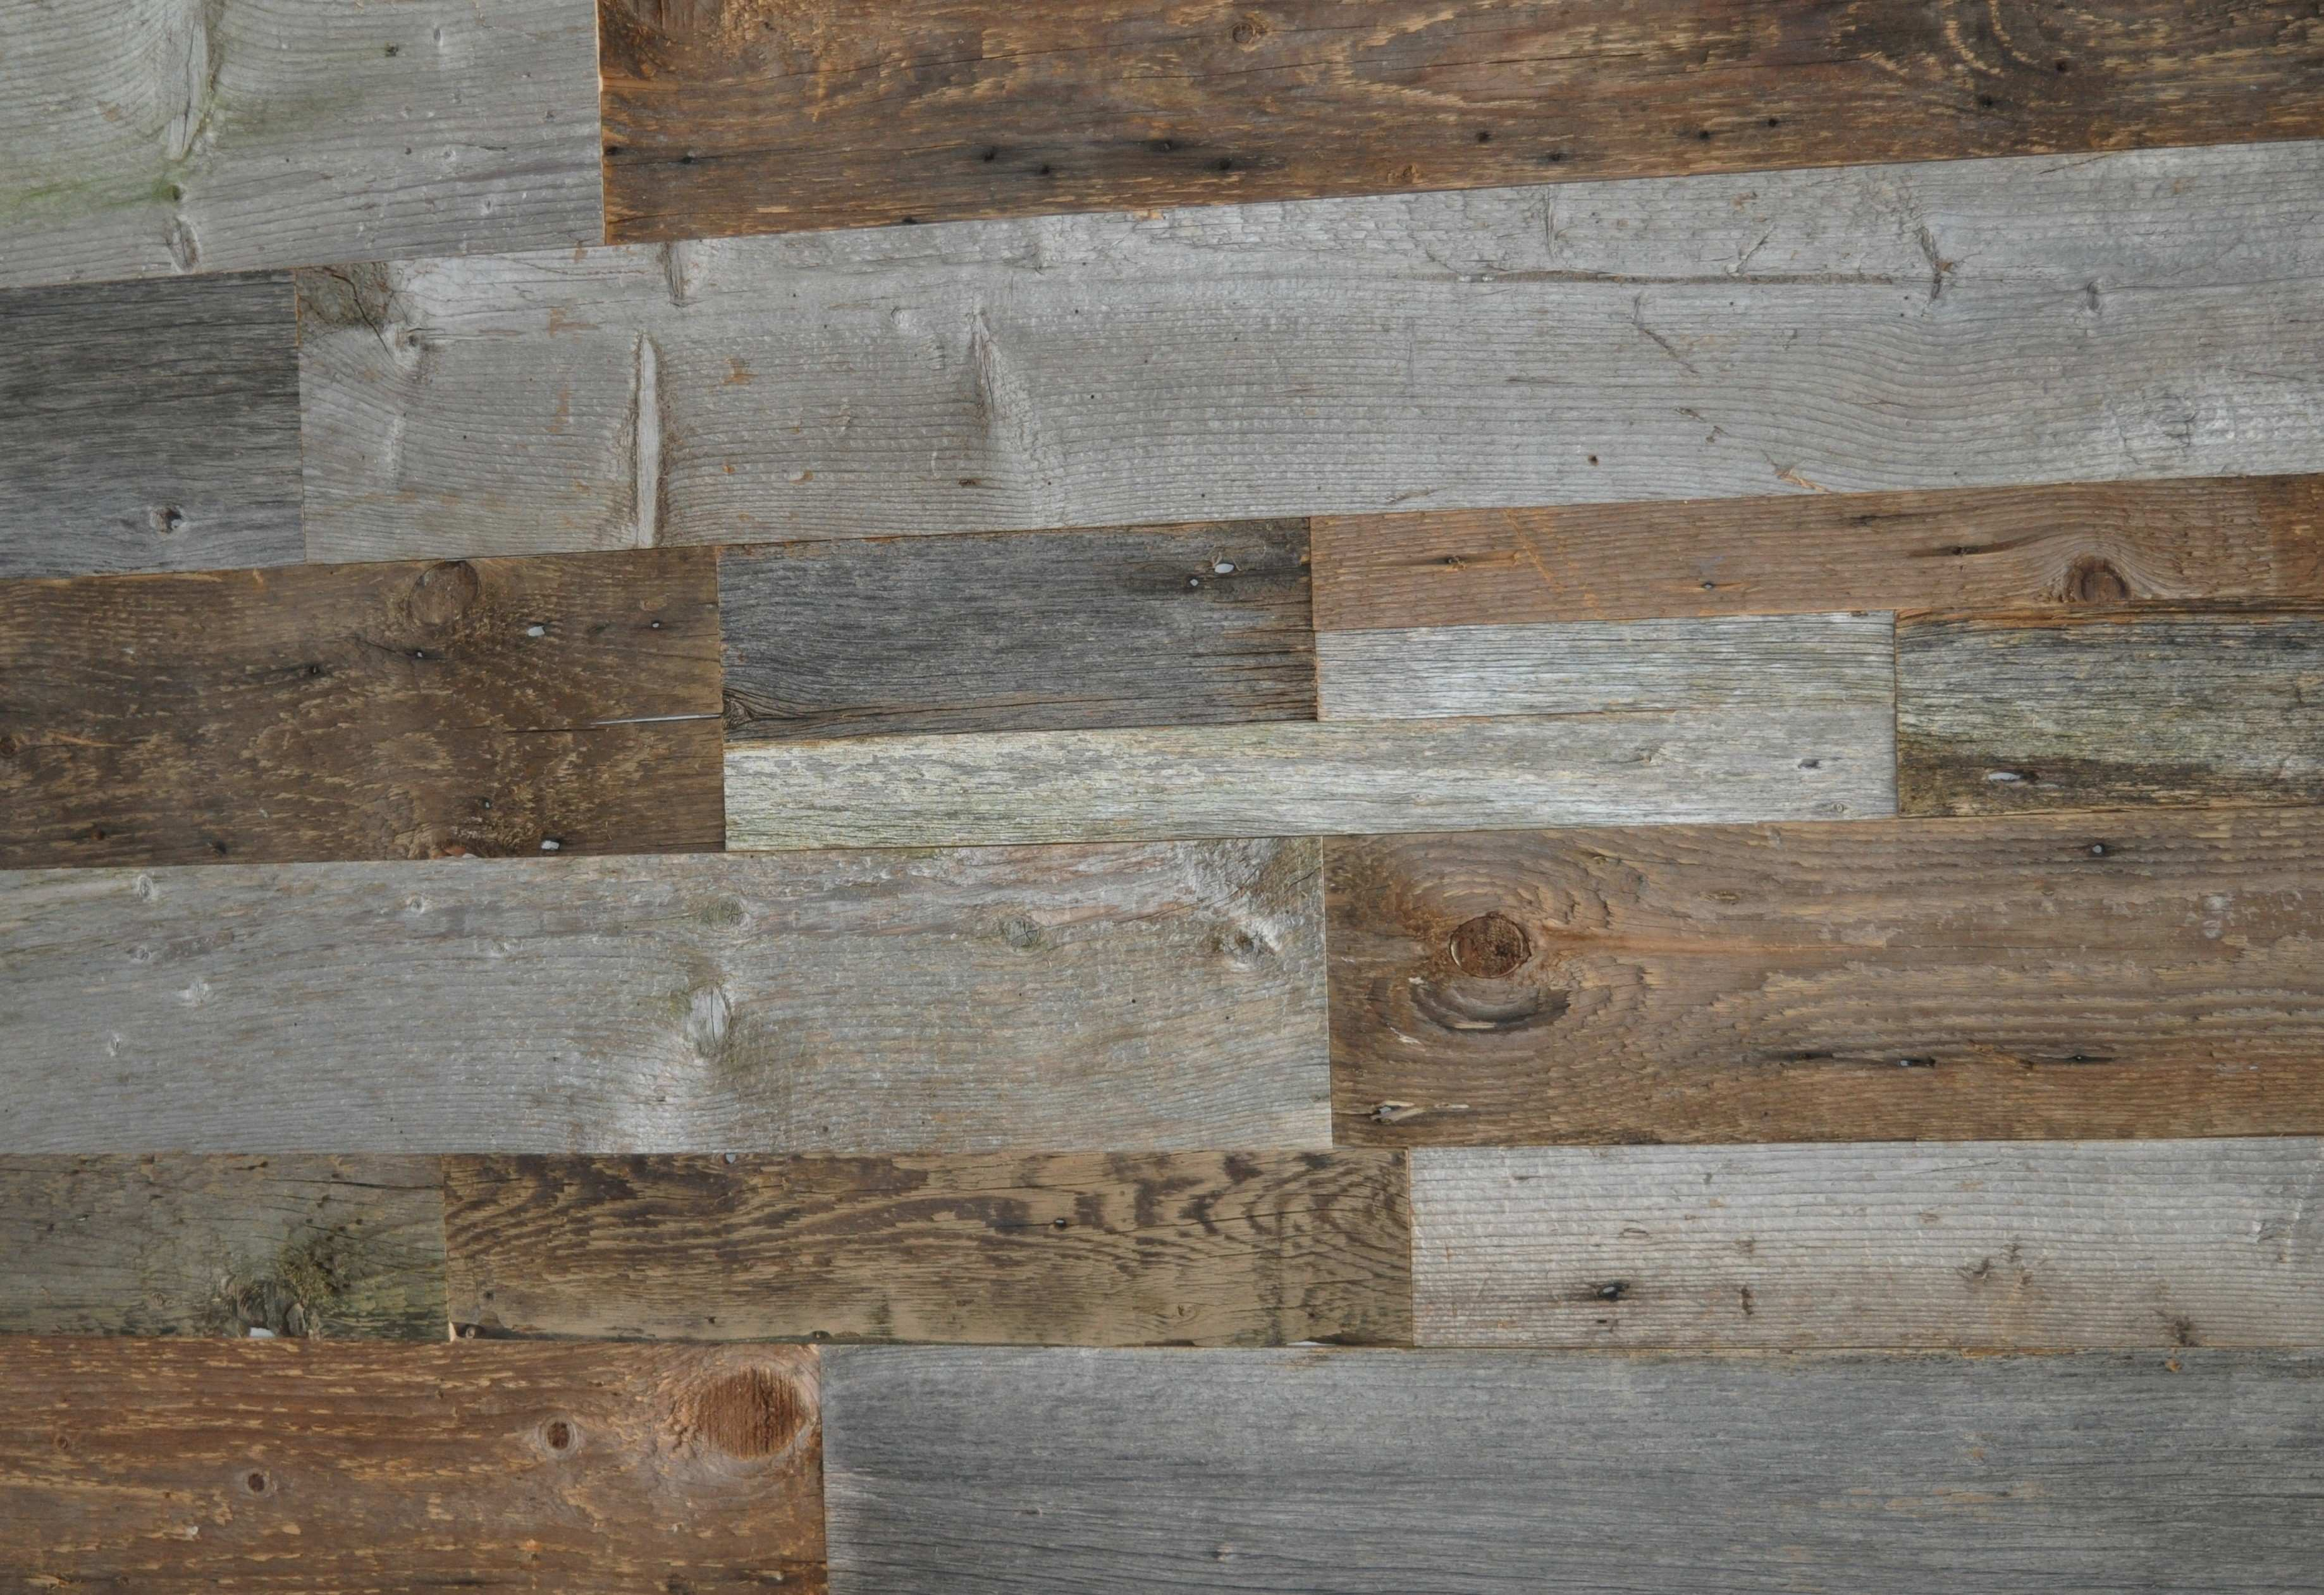 DIY Reclaimed Wood Accent Wall Grey and Natural Brown Shades Mixed